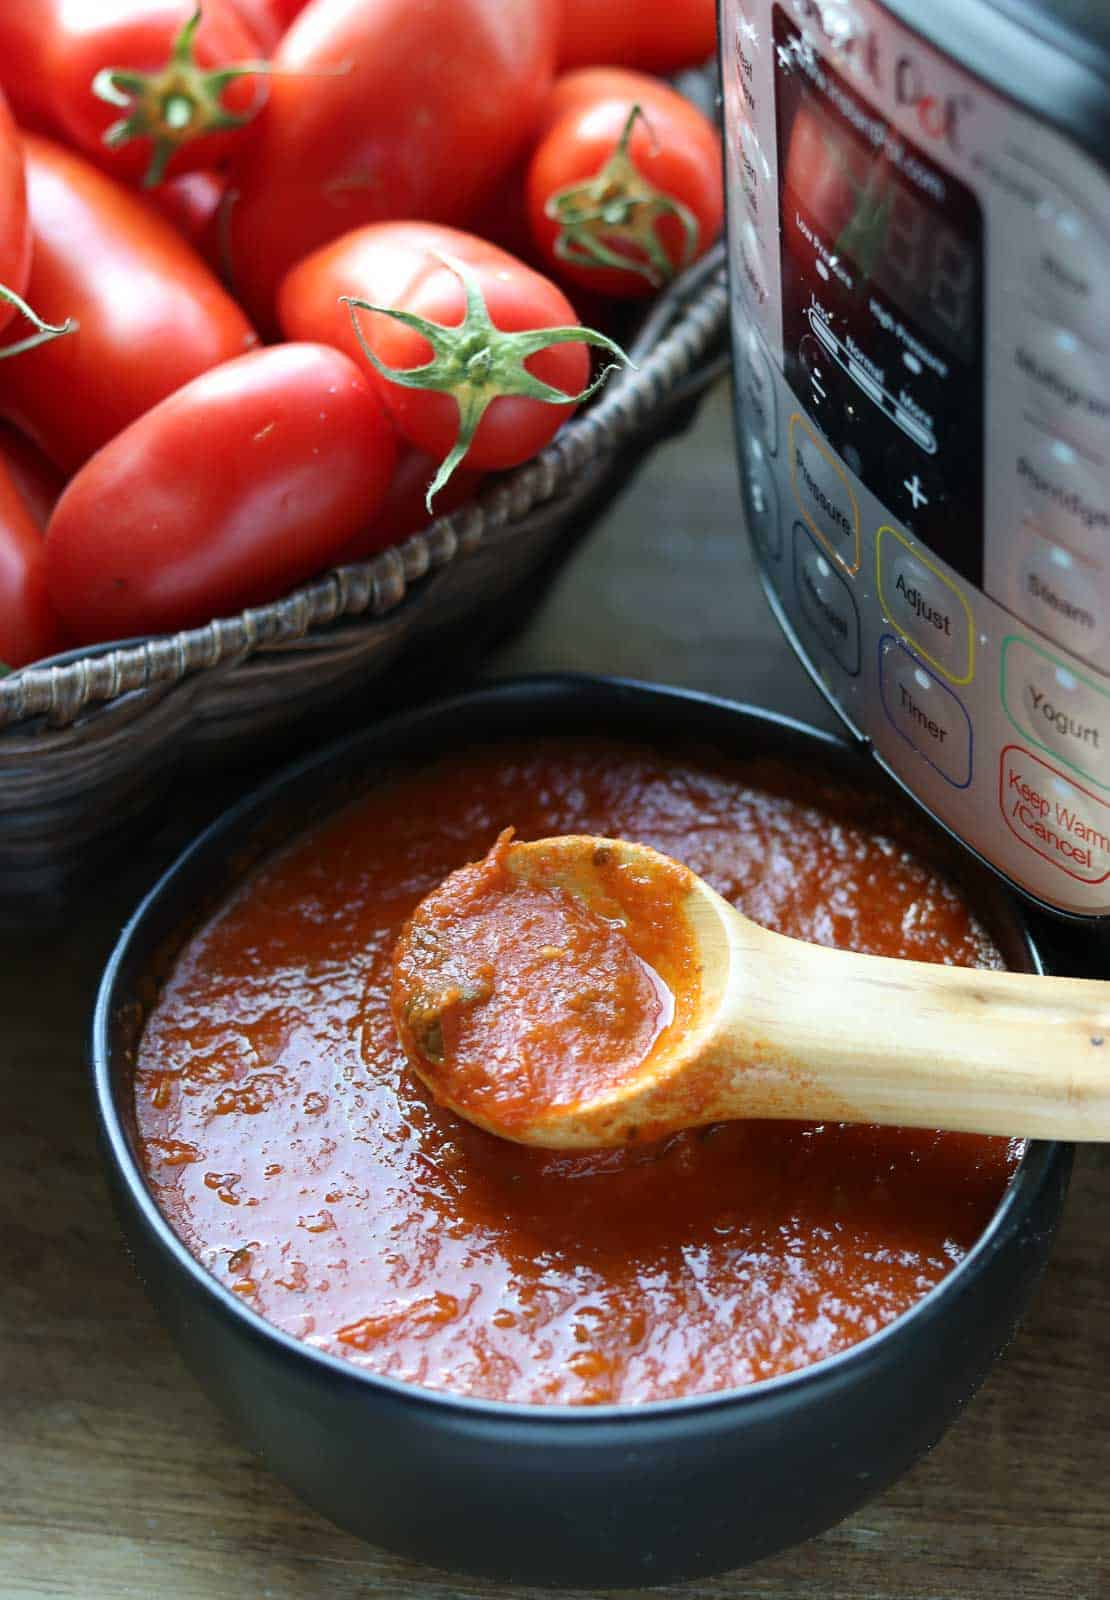 Instant Pot Homemade Tomato Sauce in a black bowl with Instant Pot and basket of tomatoes in background